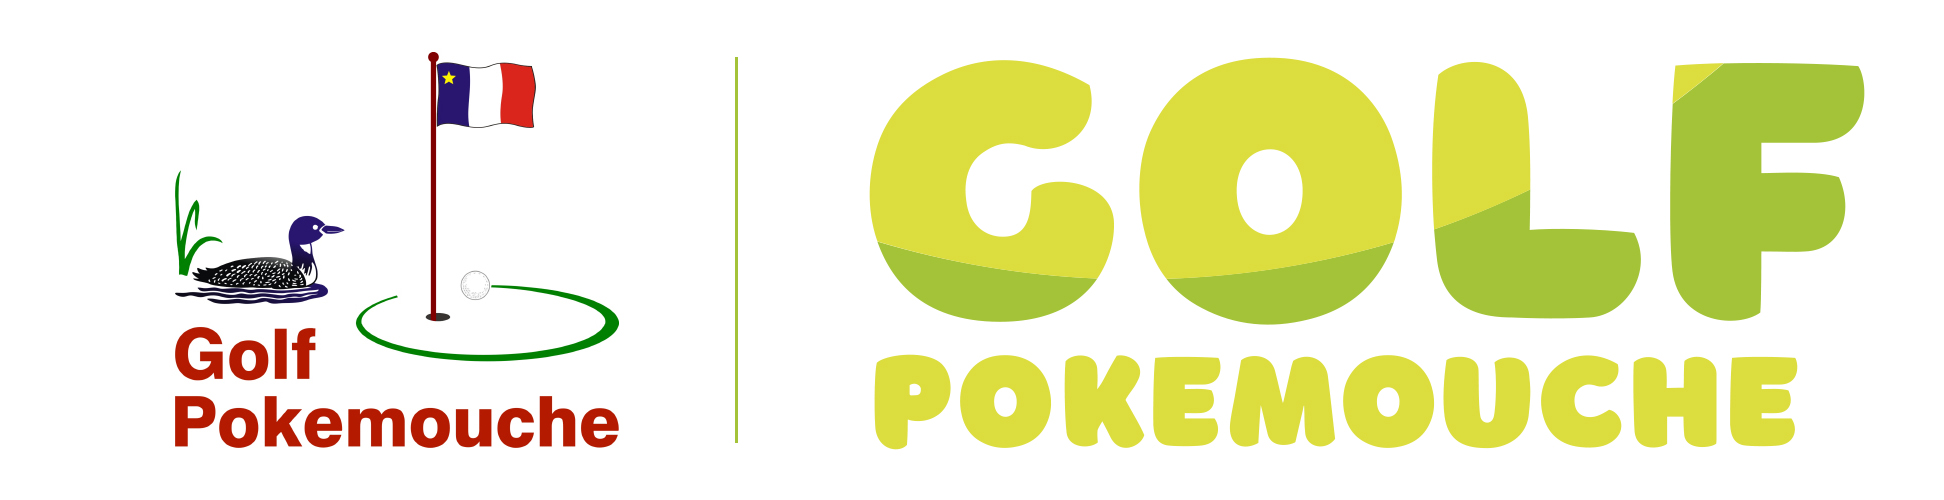 Golf Pokemouche